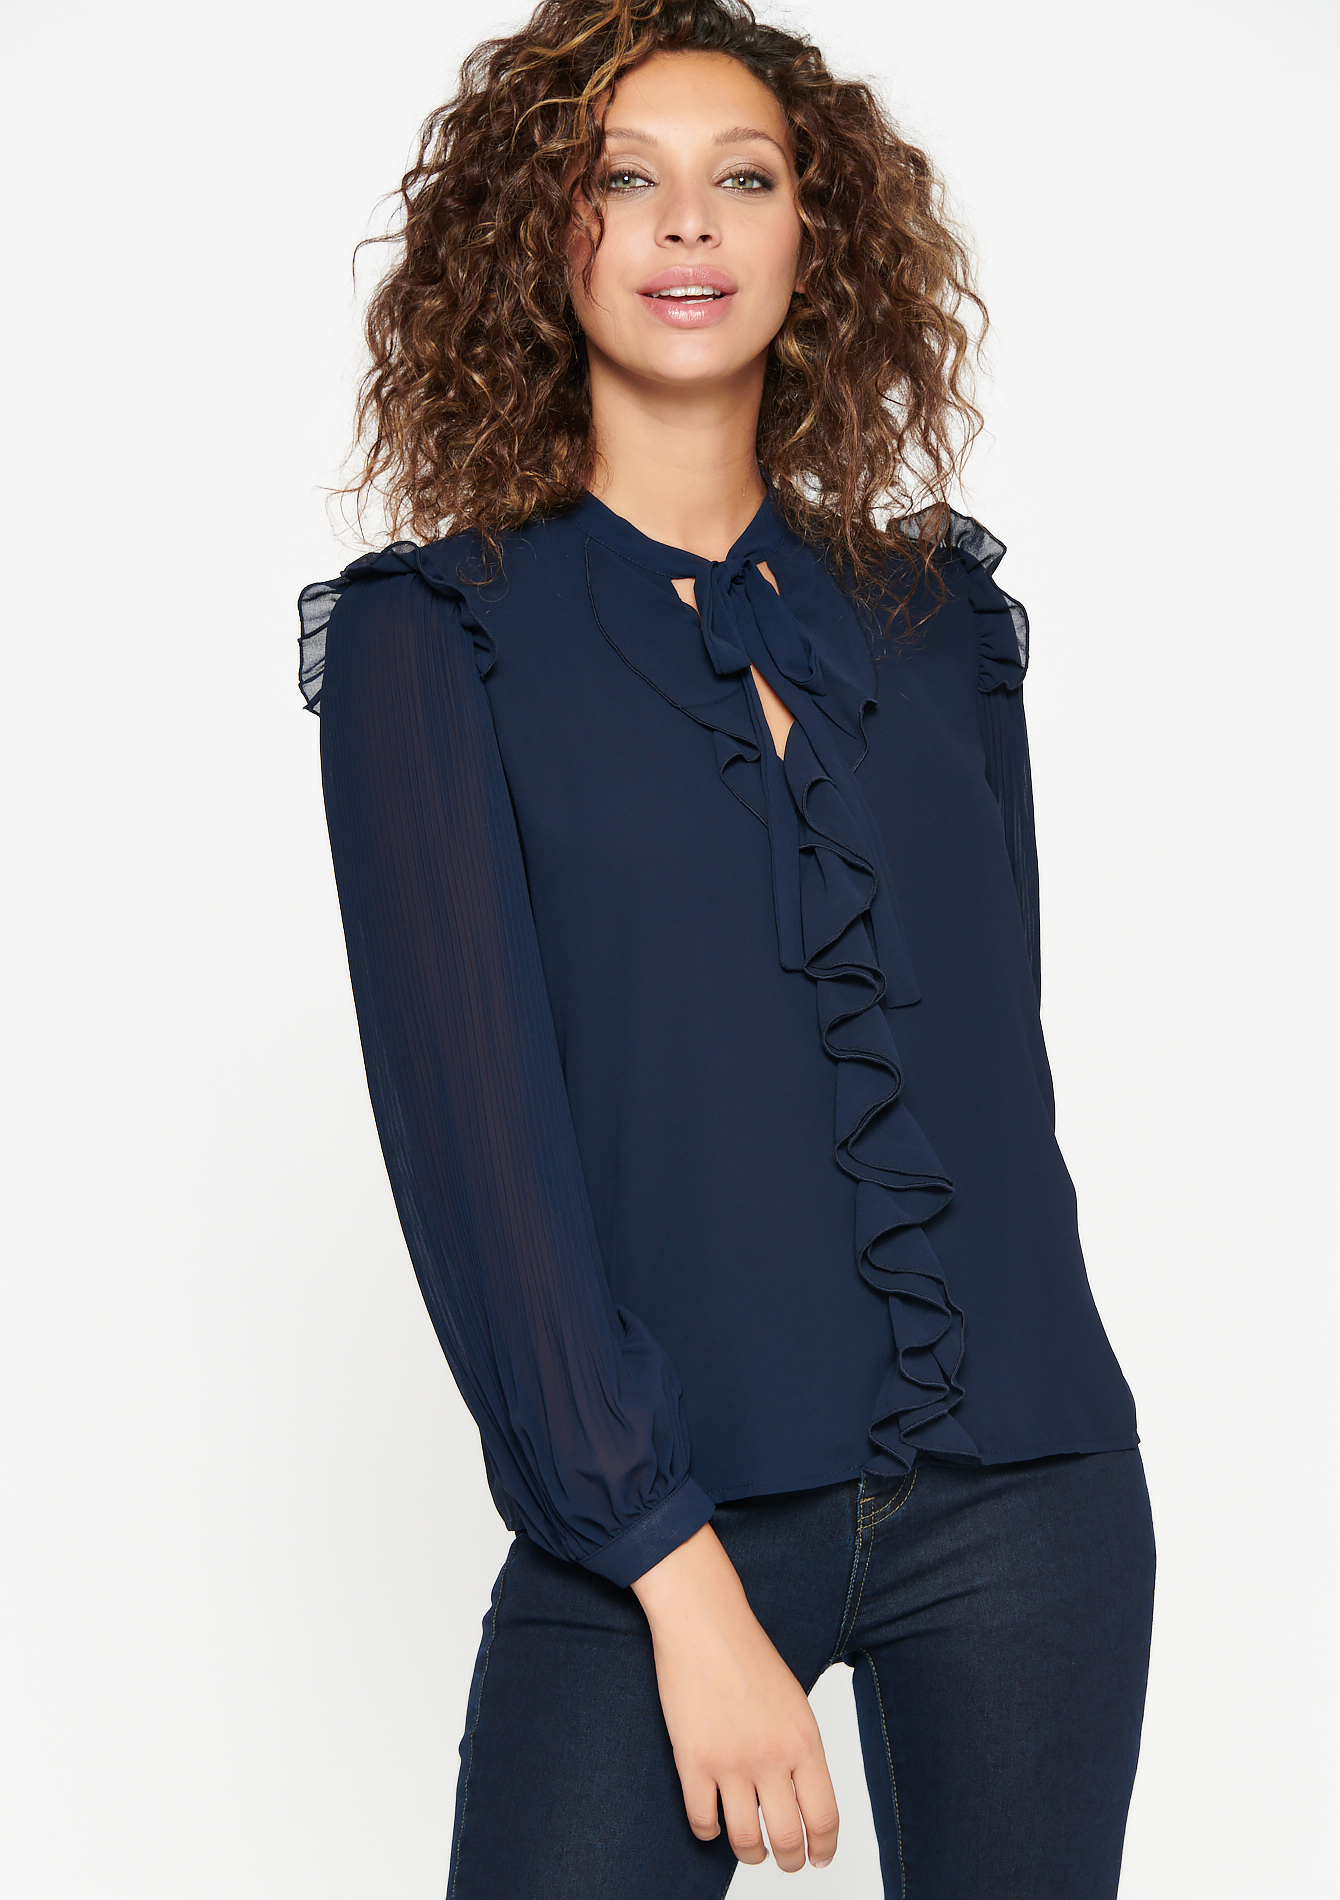 Blouse with frills and bow - NAVY BLUE - 05701528_1651